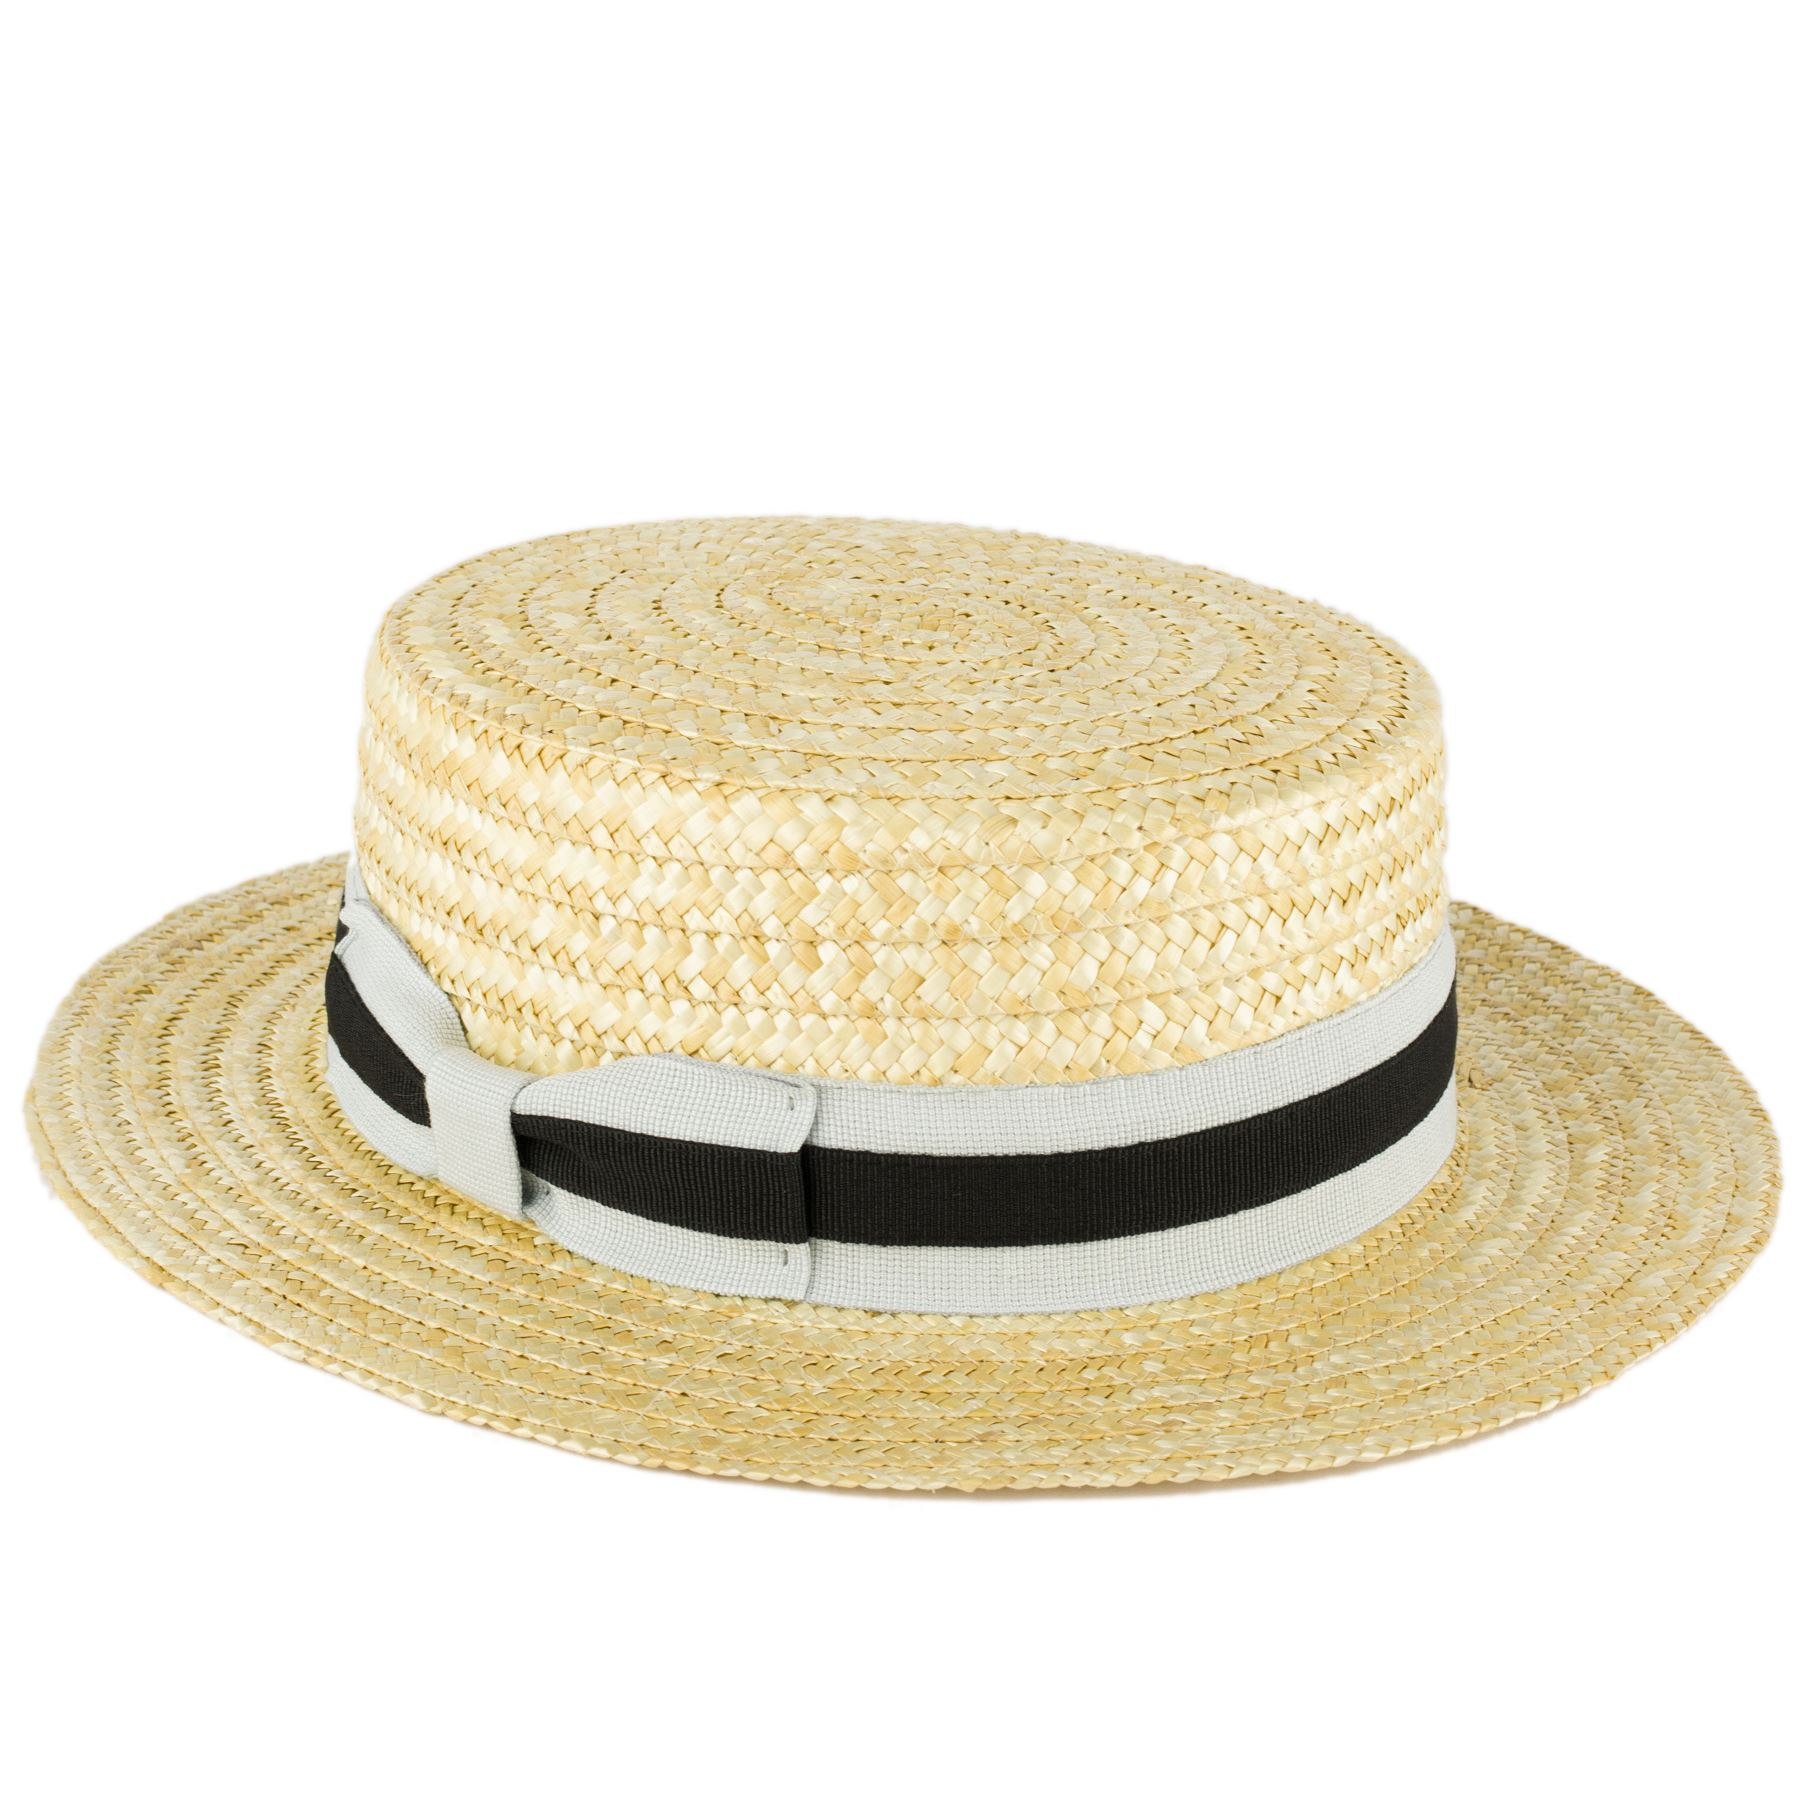 3c9815edaa8fb The Classic Straw Boater is a flat-brimmed, flat-topped straw hat in a very  dark gray.